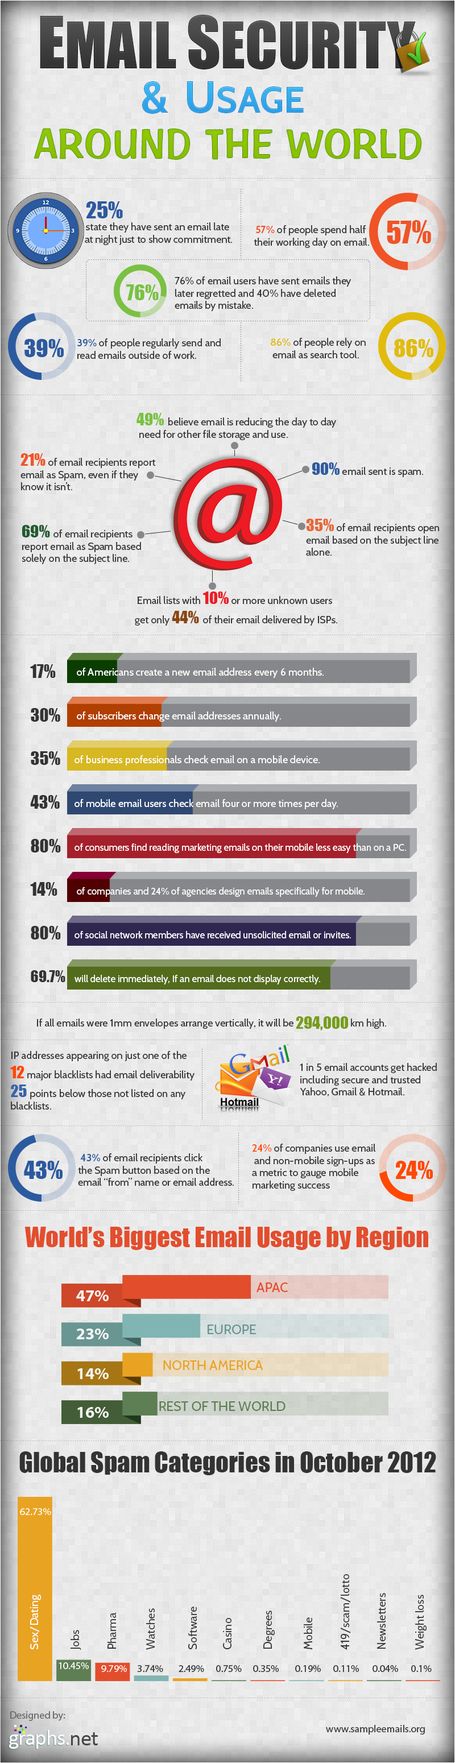 INFOGRAPHIC: Email Security & Usage Around the World | Cloud Central | Scoop.it